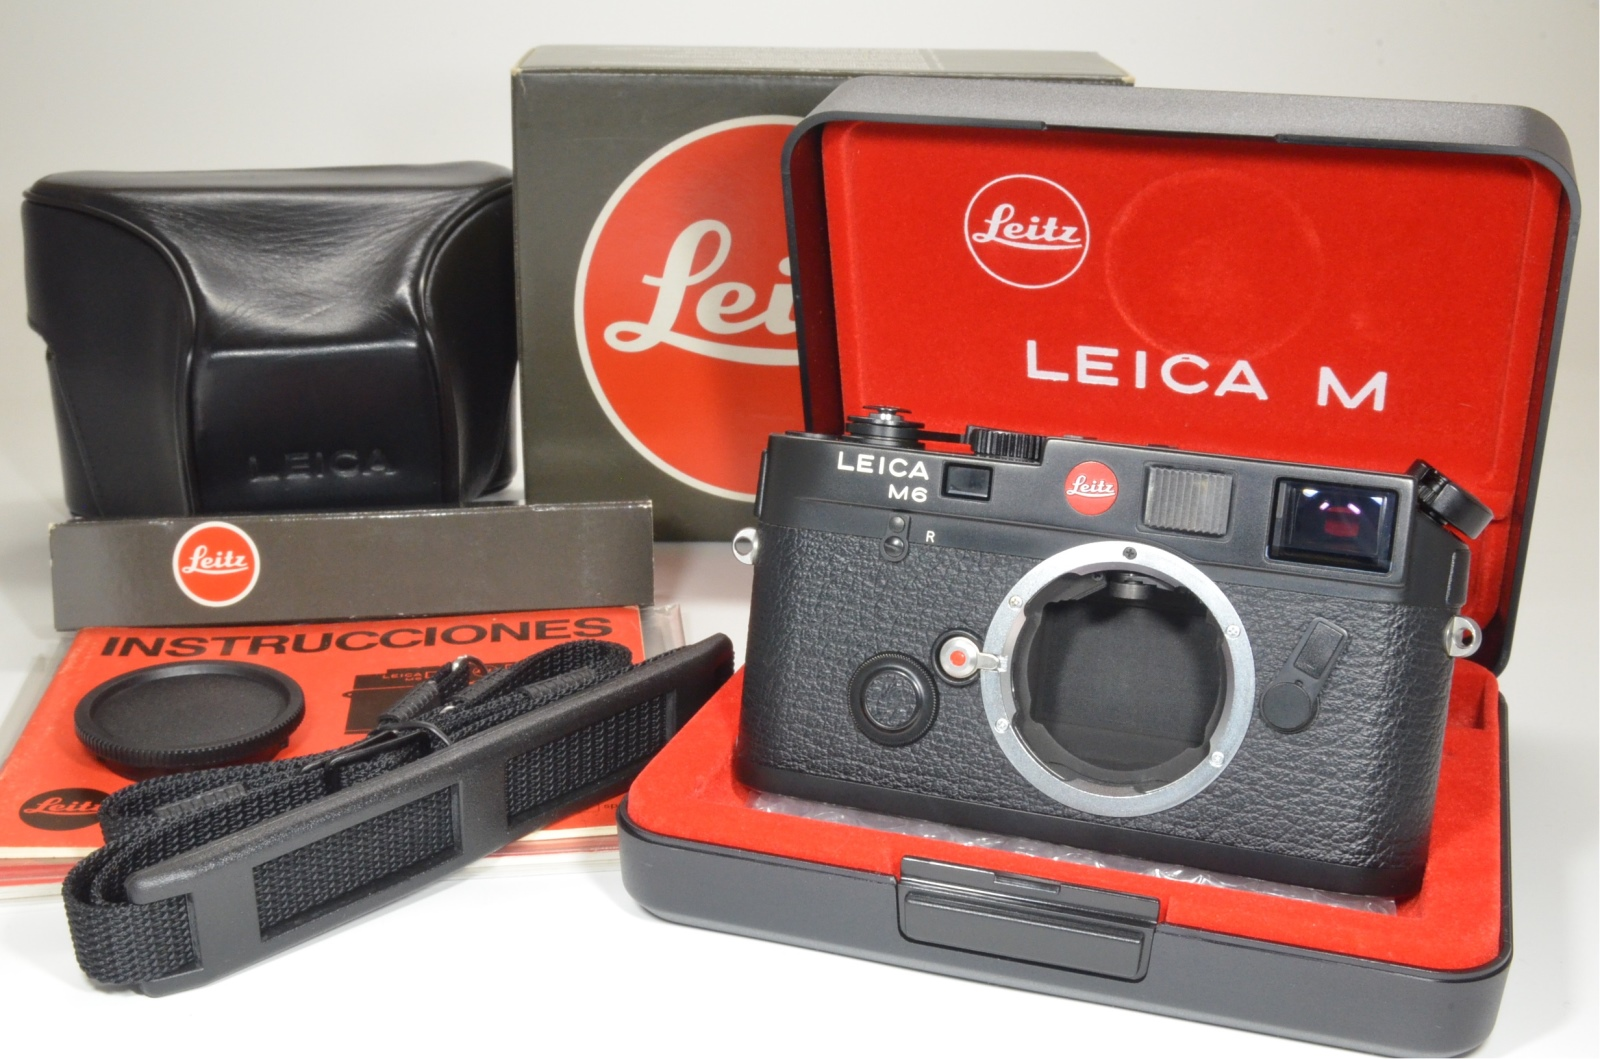 leica m6 0.72 black rangefinder serial no.1689478 year 1986 with case